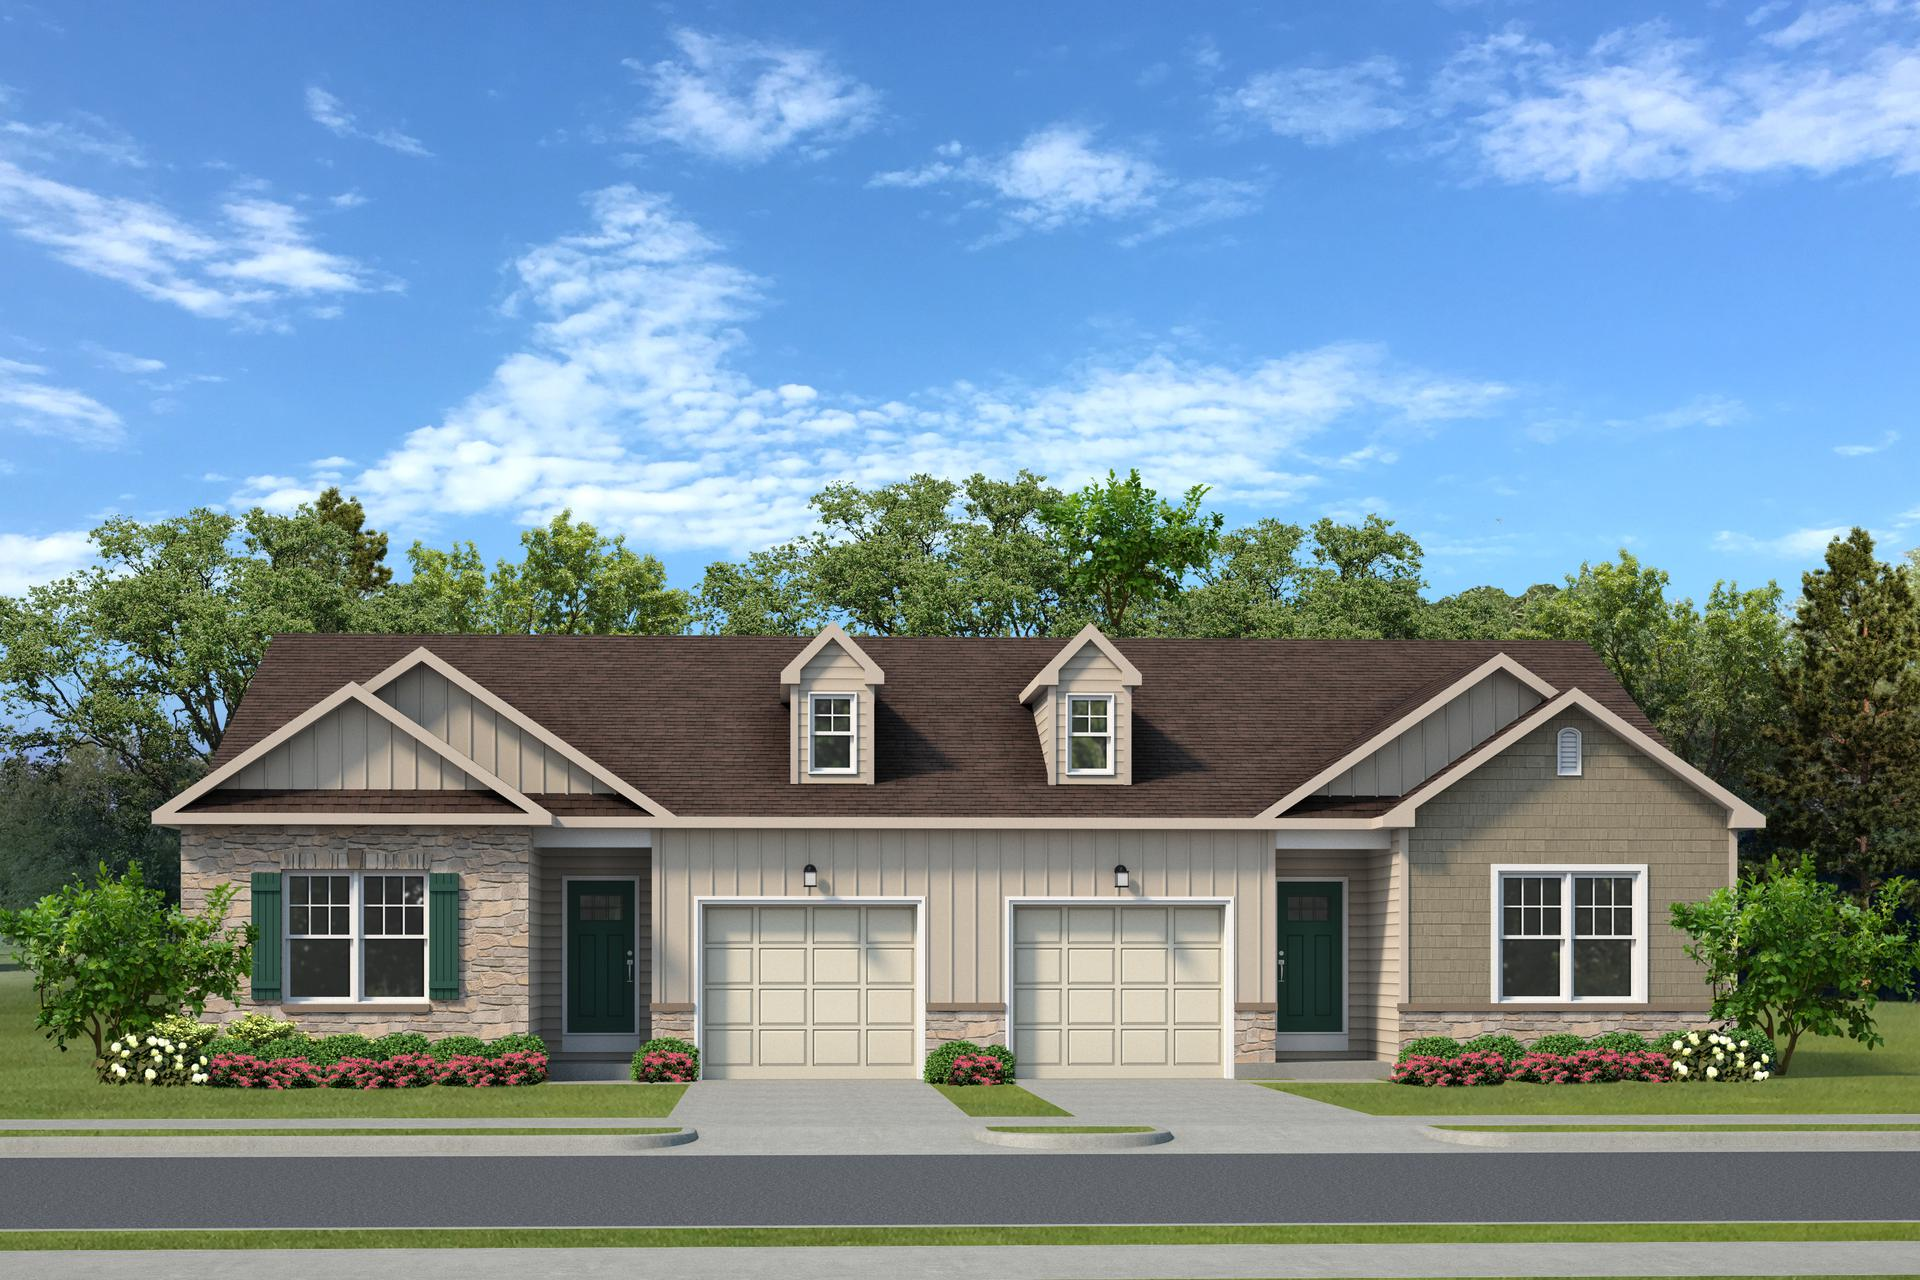 The Cottages New Home in White Haven PA - Golden Oaks Village